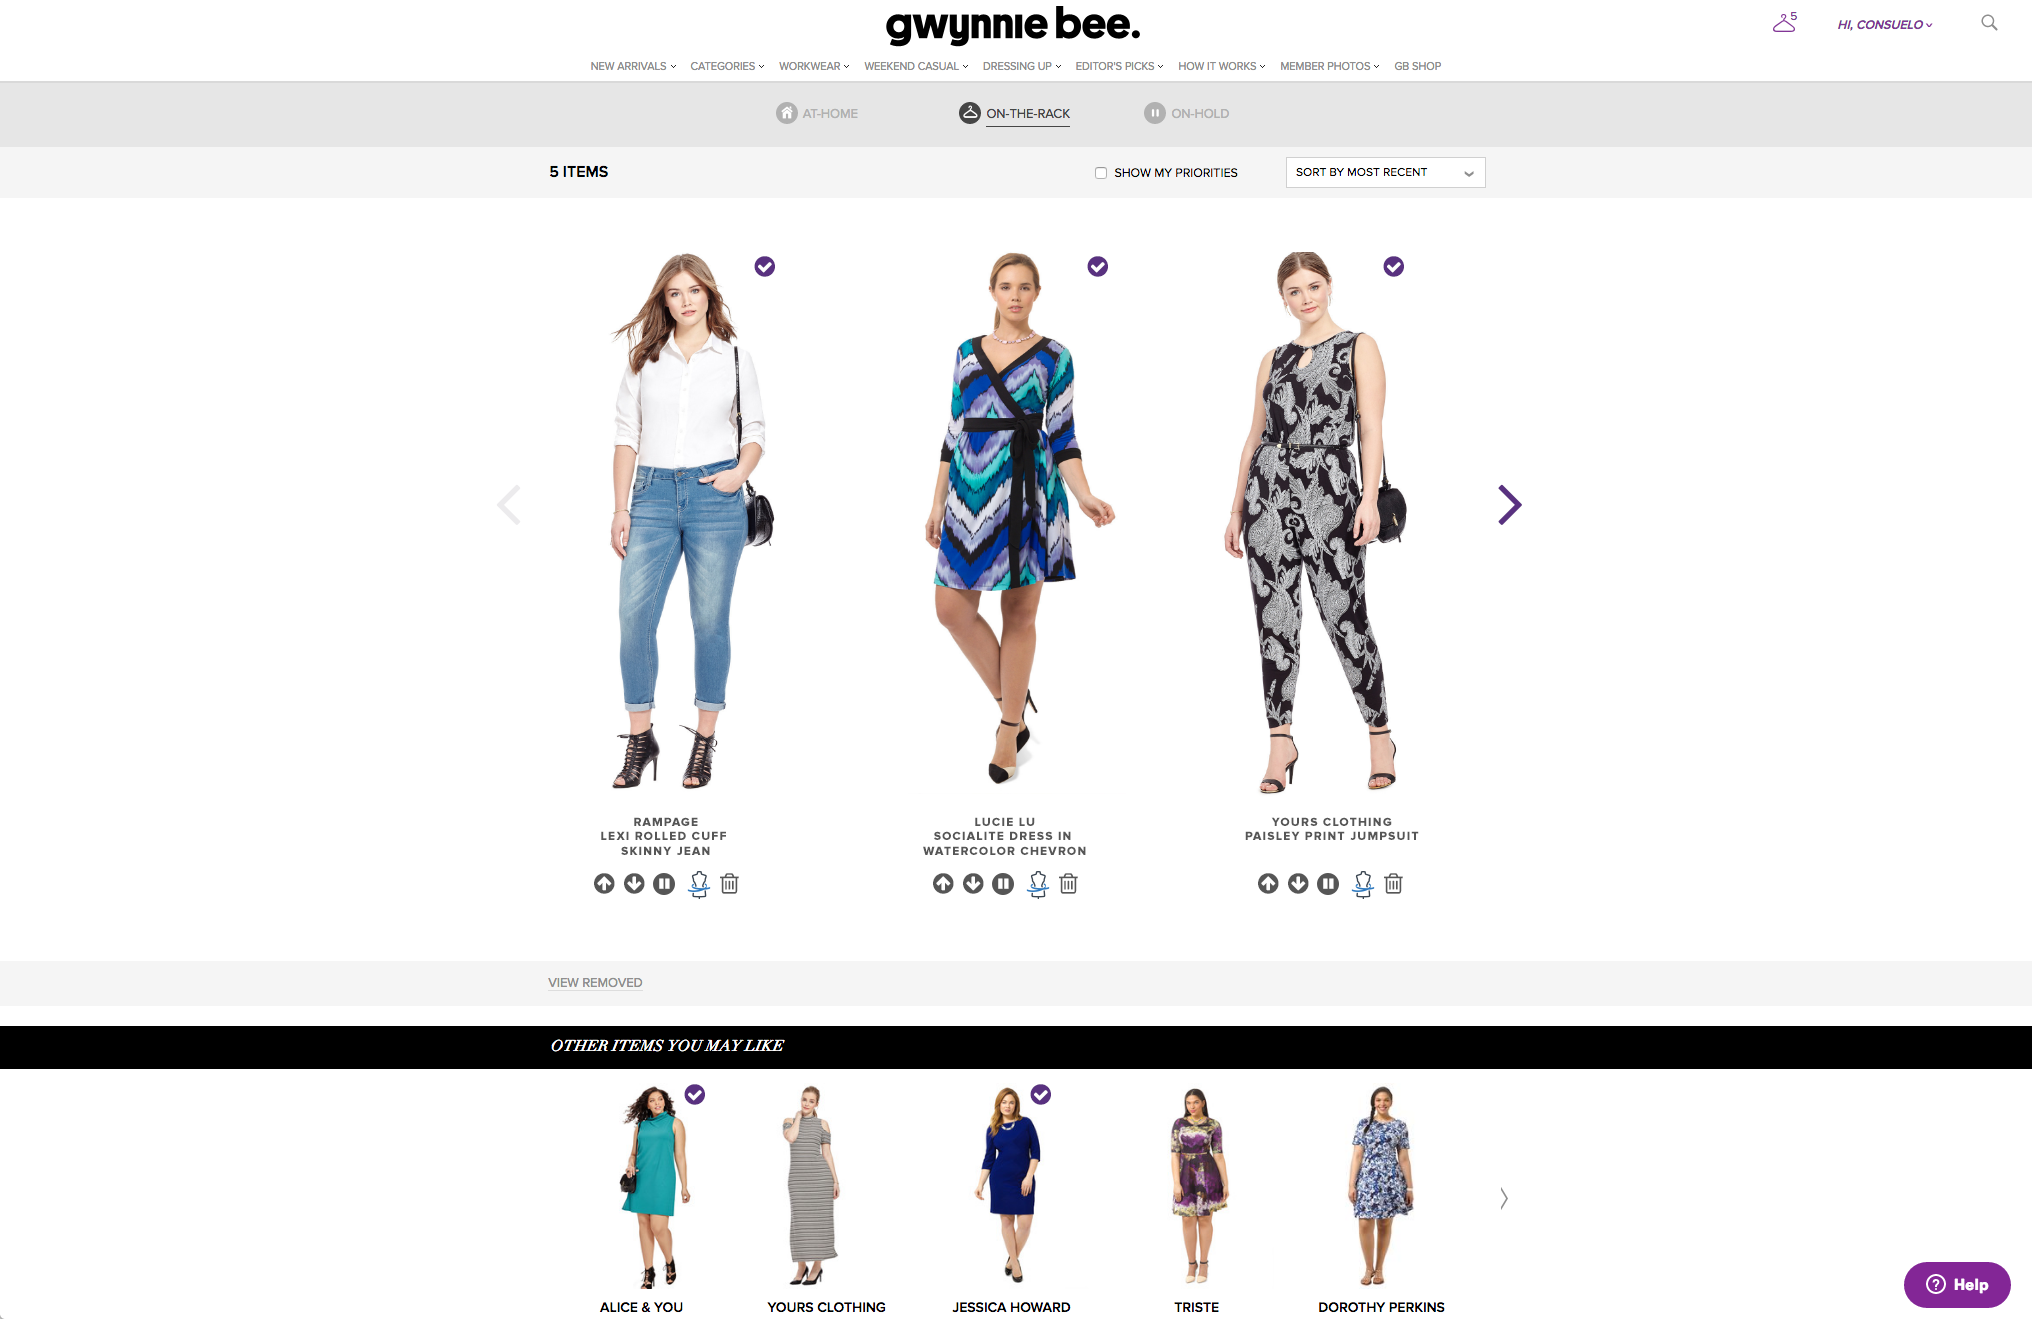 """Re-imagined Virtual Closet. The items are in order of your prioritization, you can move the order by clicking & dragging, or by using the icons. The """"Dress Form"""" icon is where you make size changes. I love the larger photograph, wth the garment name visible without clicking. I also like the idea of scrolling through the larger images to see what's On-The-Rack. I would suggest a similar layout for the At-Home section."""